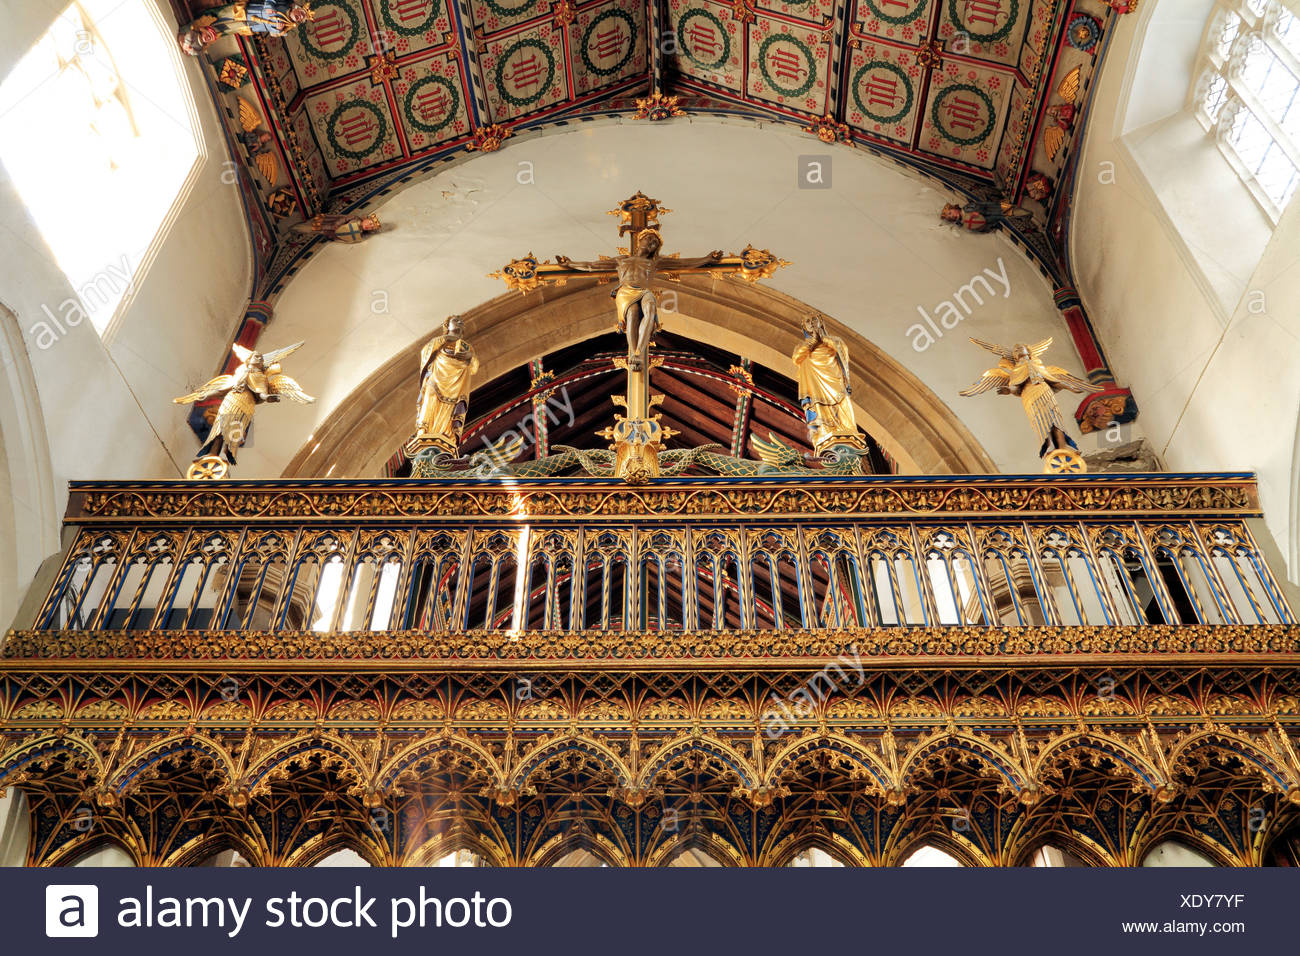 Eye, Suffolk. Rood screen, Loft and Vault, rebuilt by Sir Ninian Comper, 1925, England UK - Stock Image